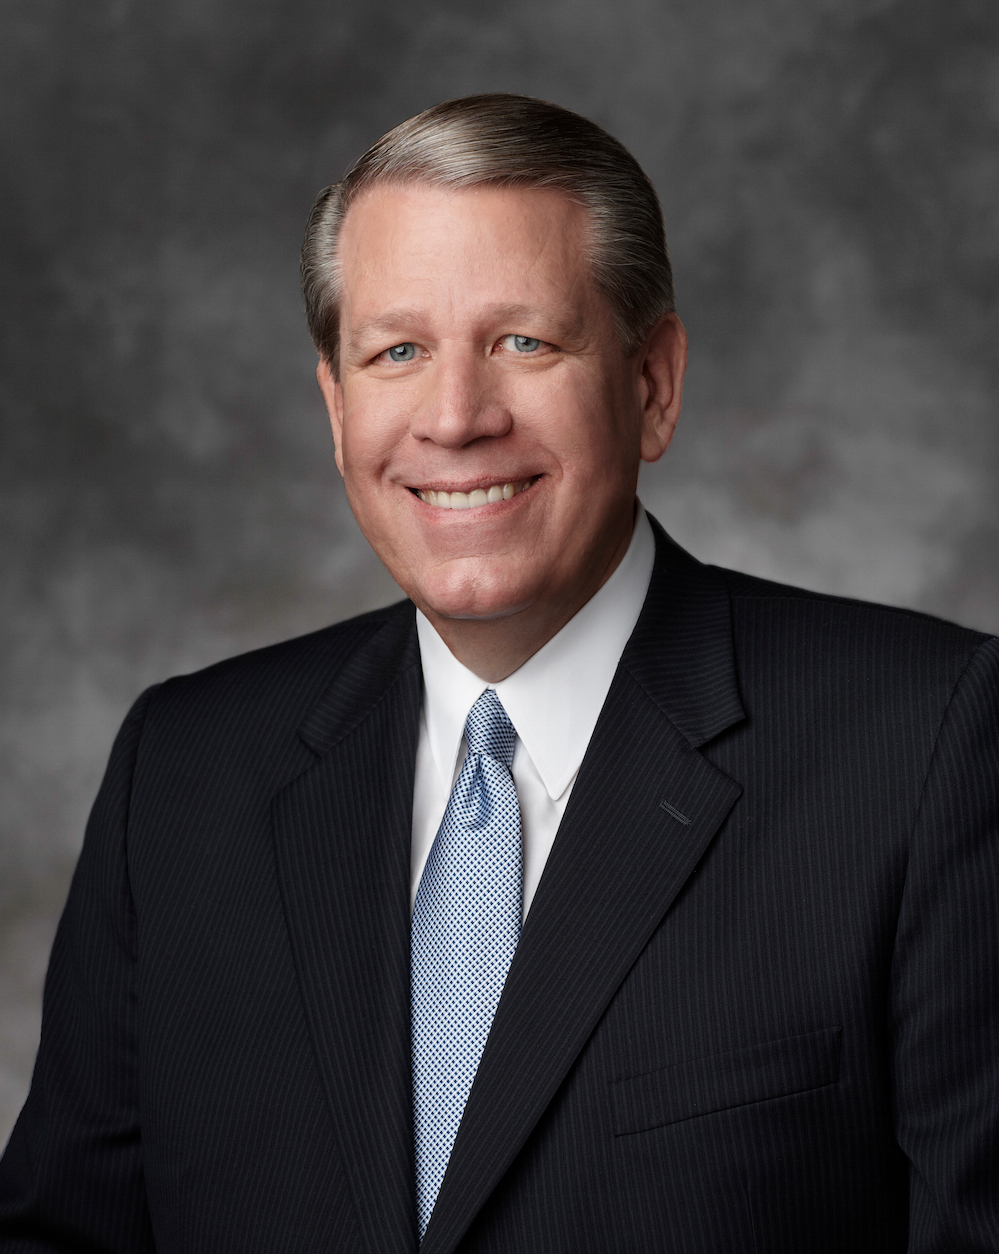 Elder Donald L. Hallstrom of the Presidency of the Seventy spoke at a CES Fireside Nov. 2 where changes to institute and BYU religious education classes were announced. (Mormon Newsroom)